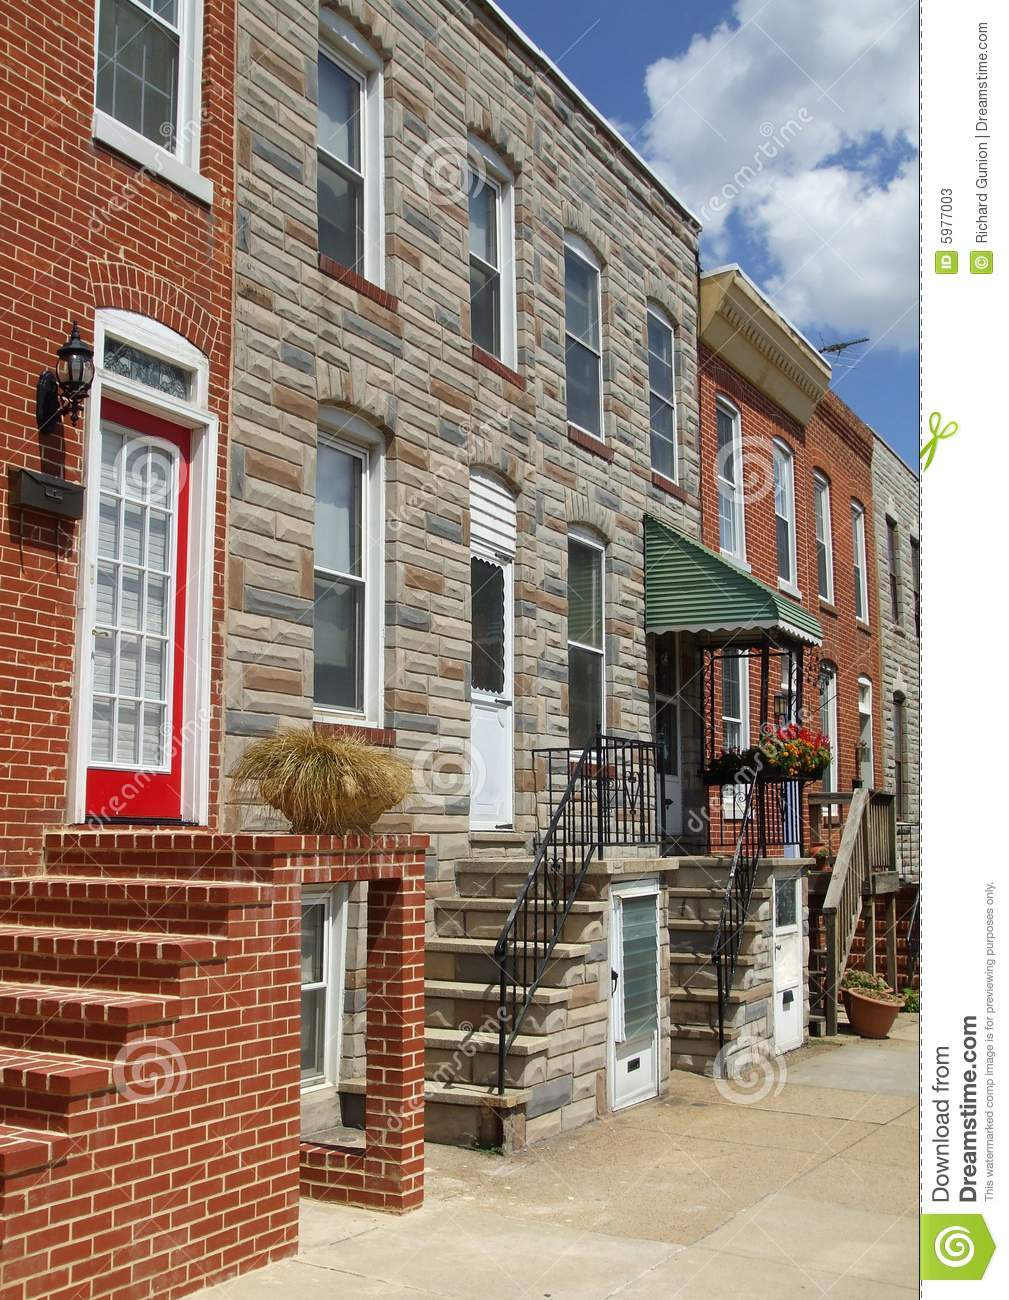 Baltimore maryland town houses stock photos image 5977003 for House builders in maryland